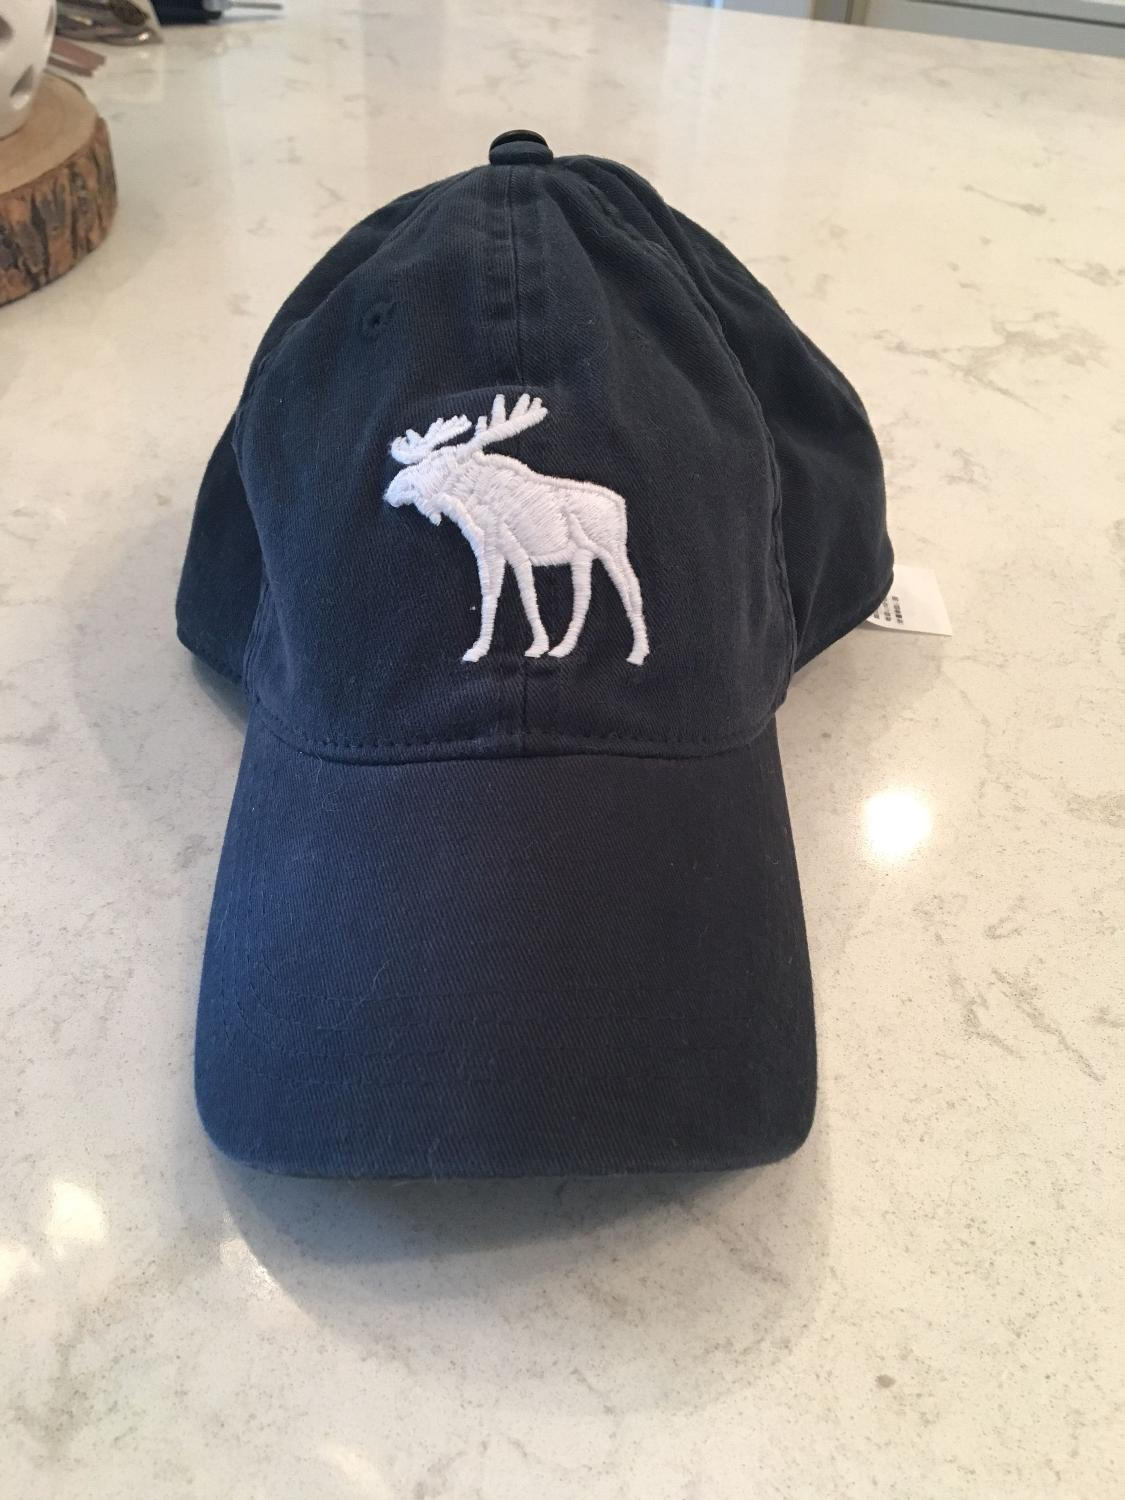 8c70a334e3992 Best Abercrombie And Fitch Cap Unisex for sale in Morton